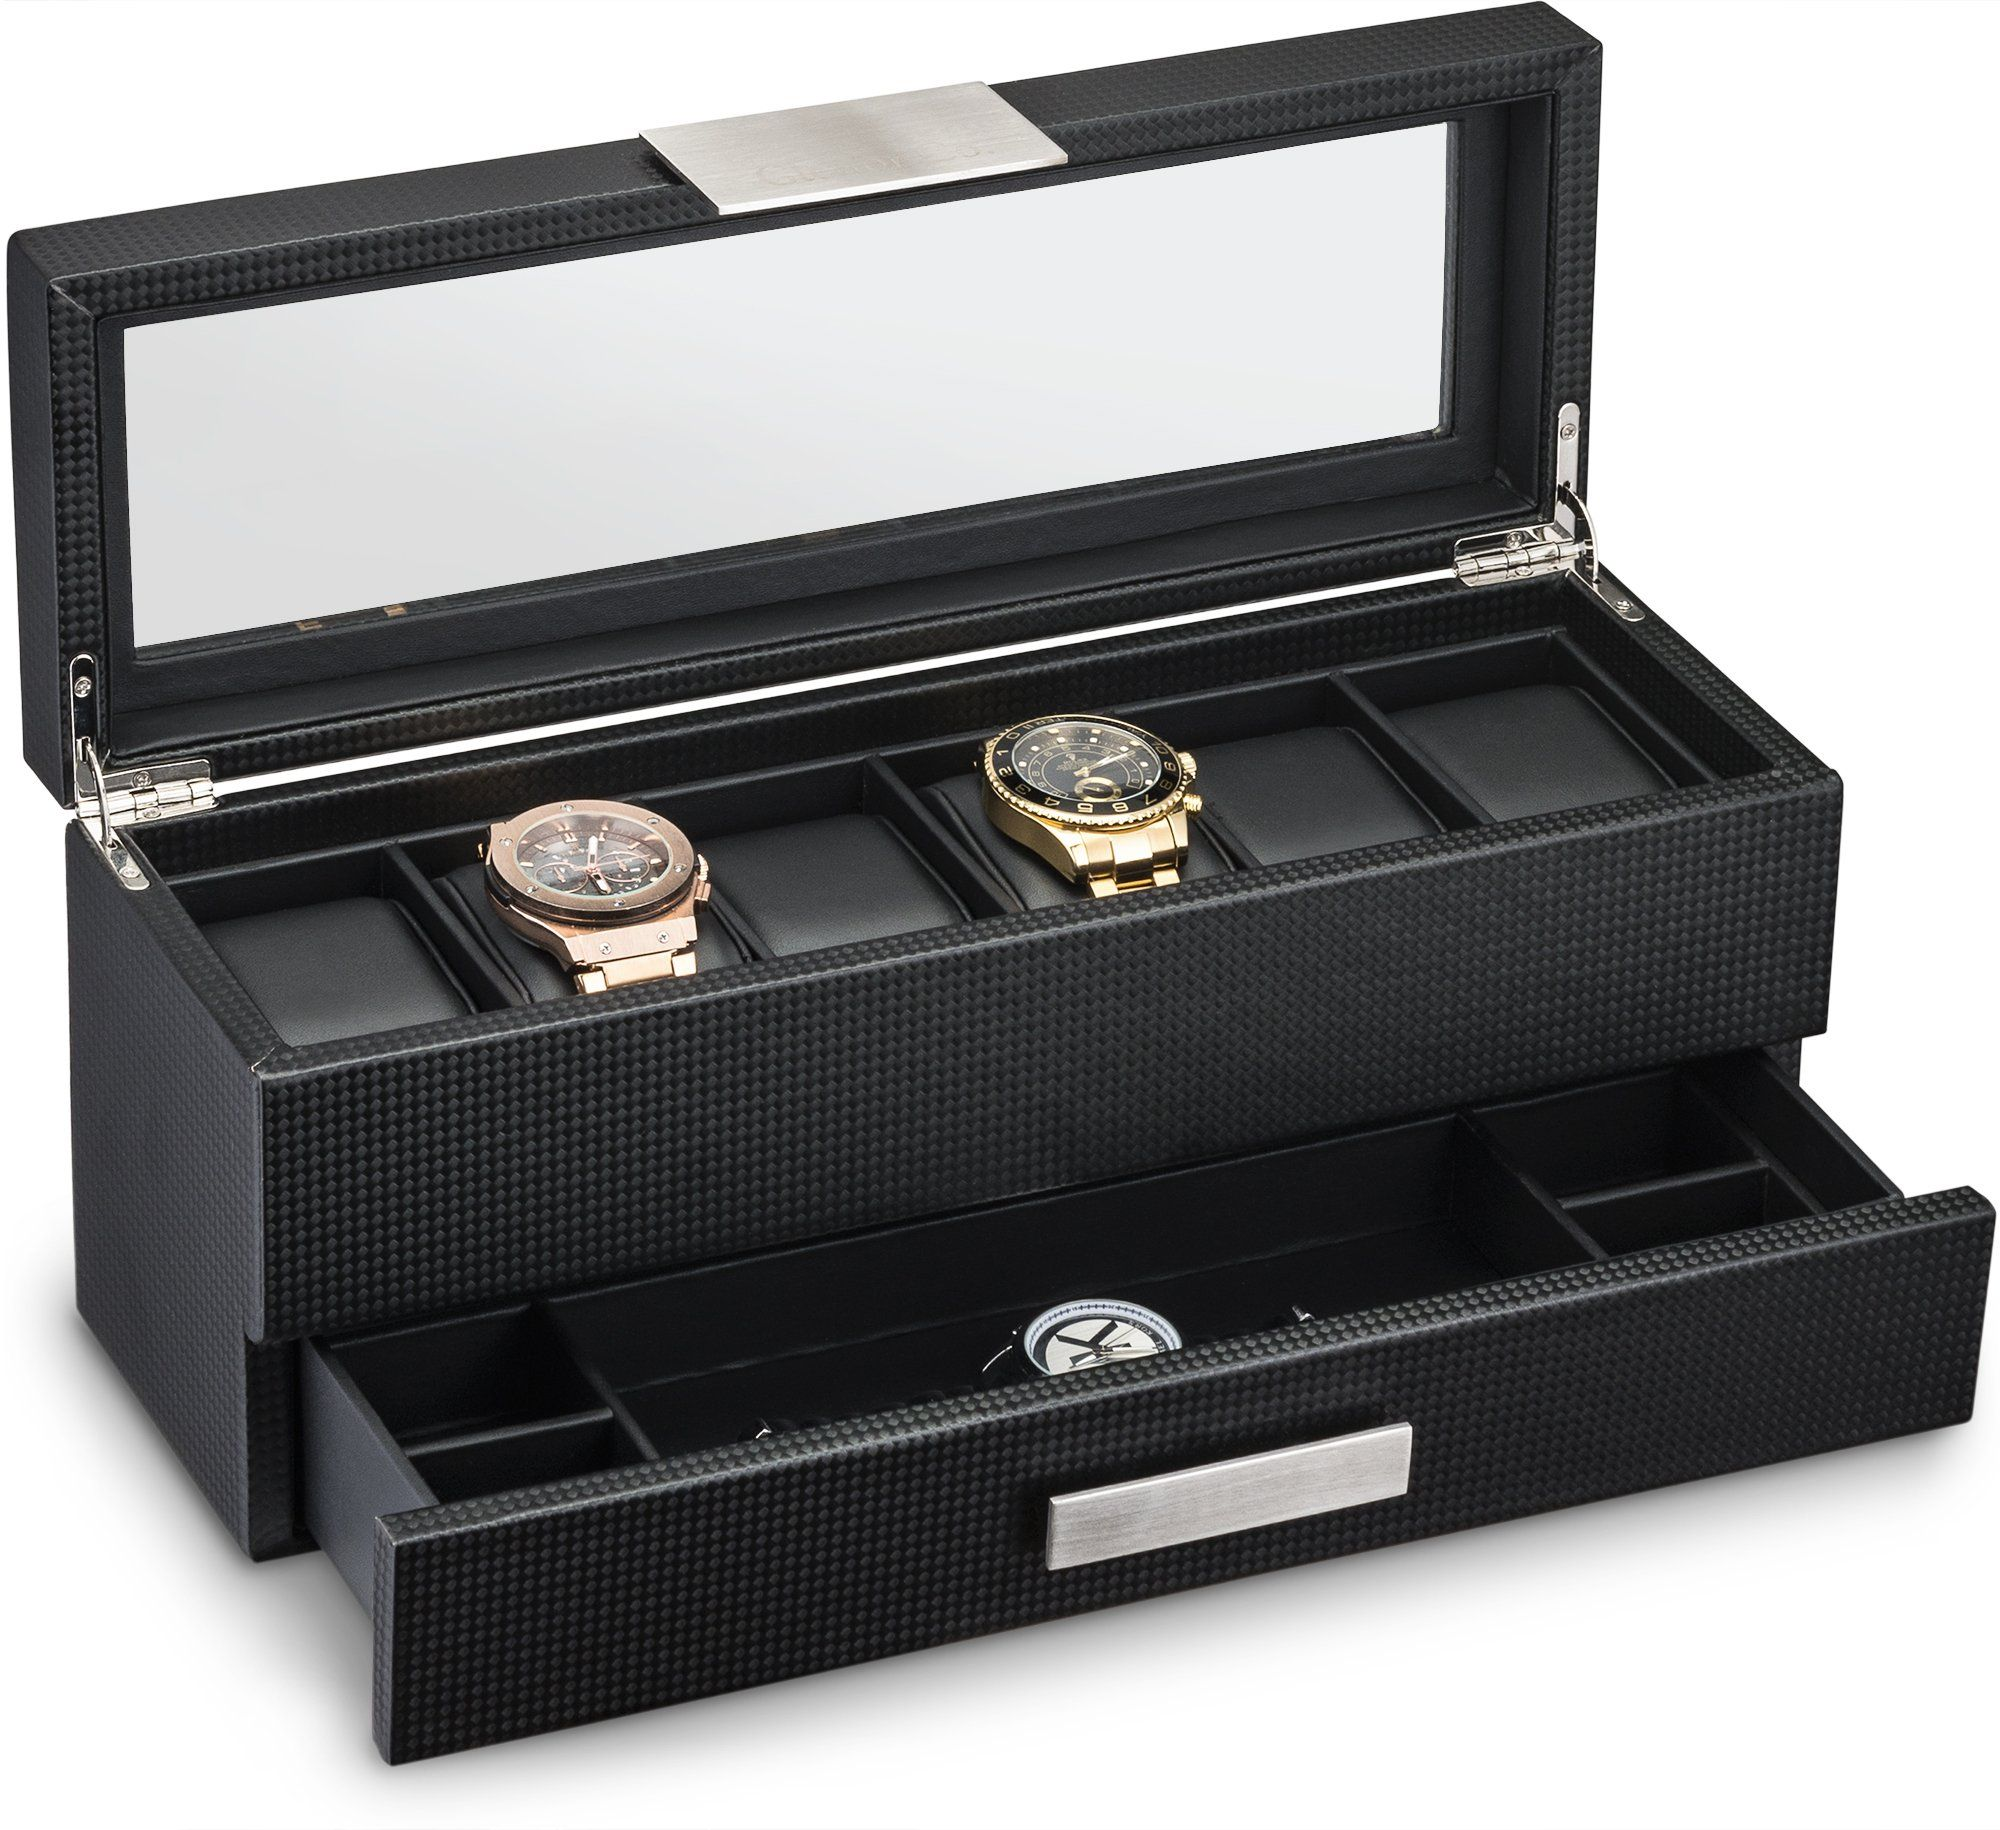 Watch Box with Valet Drawer for Men - 6 Slot Luxury Watch Case Display Organizer Carbon Fiber Design for Mens Jewelry Watches The Menu0027s Storage Boxes ...  sc 1 st  Pinterest & Watch Box with Valet Drawer for Men - 6 Slot Luxury Watch Case ...